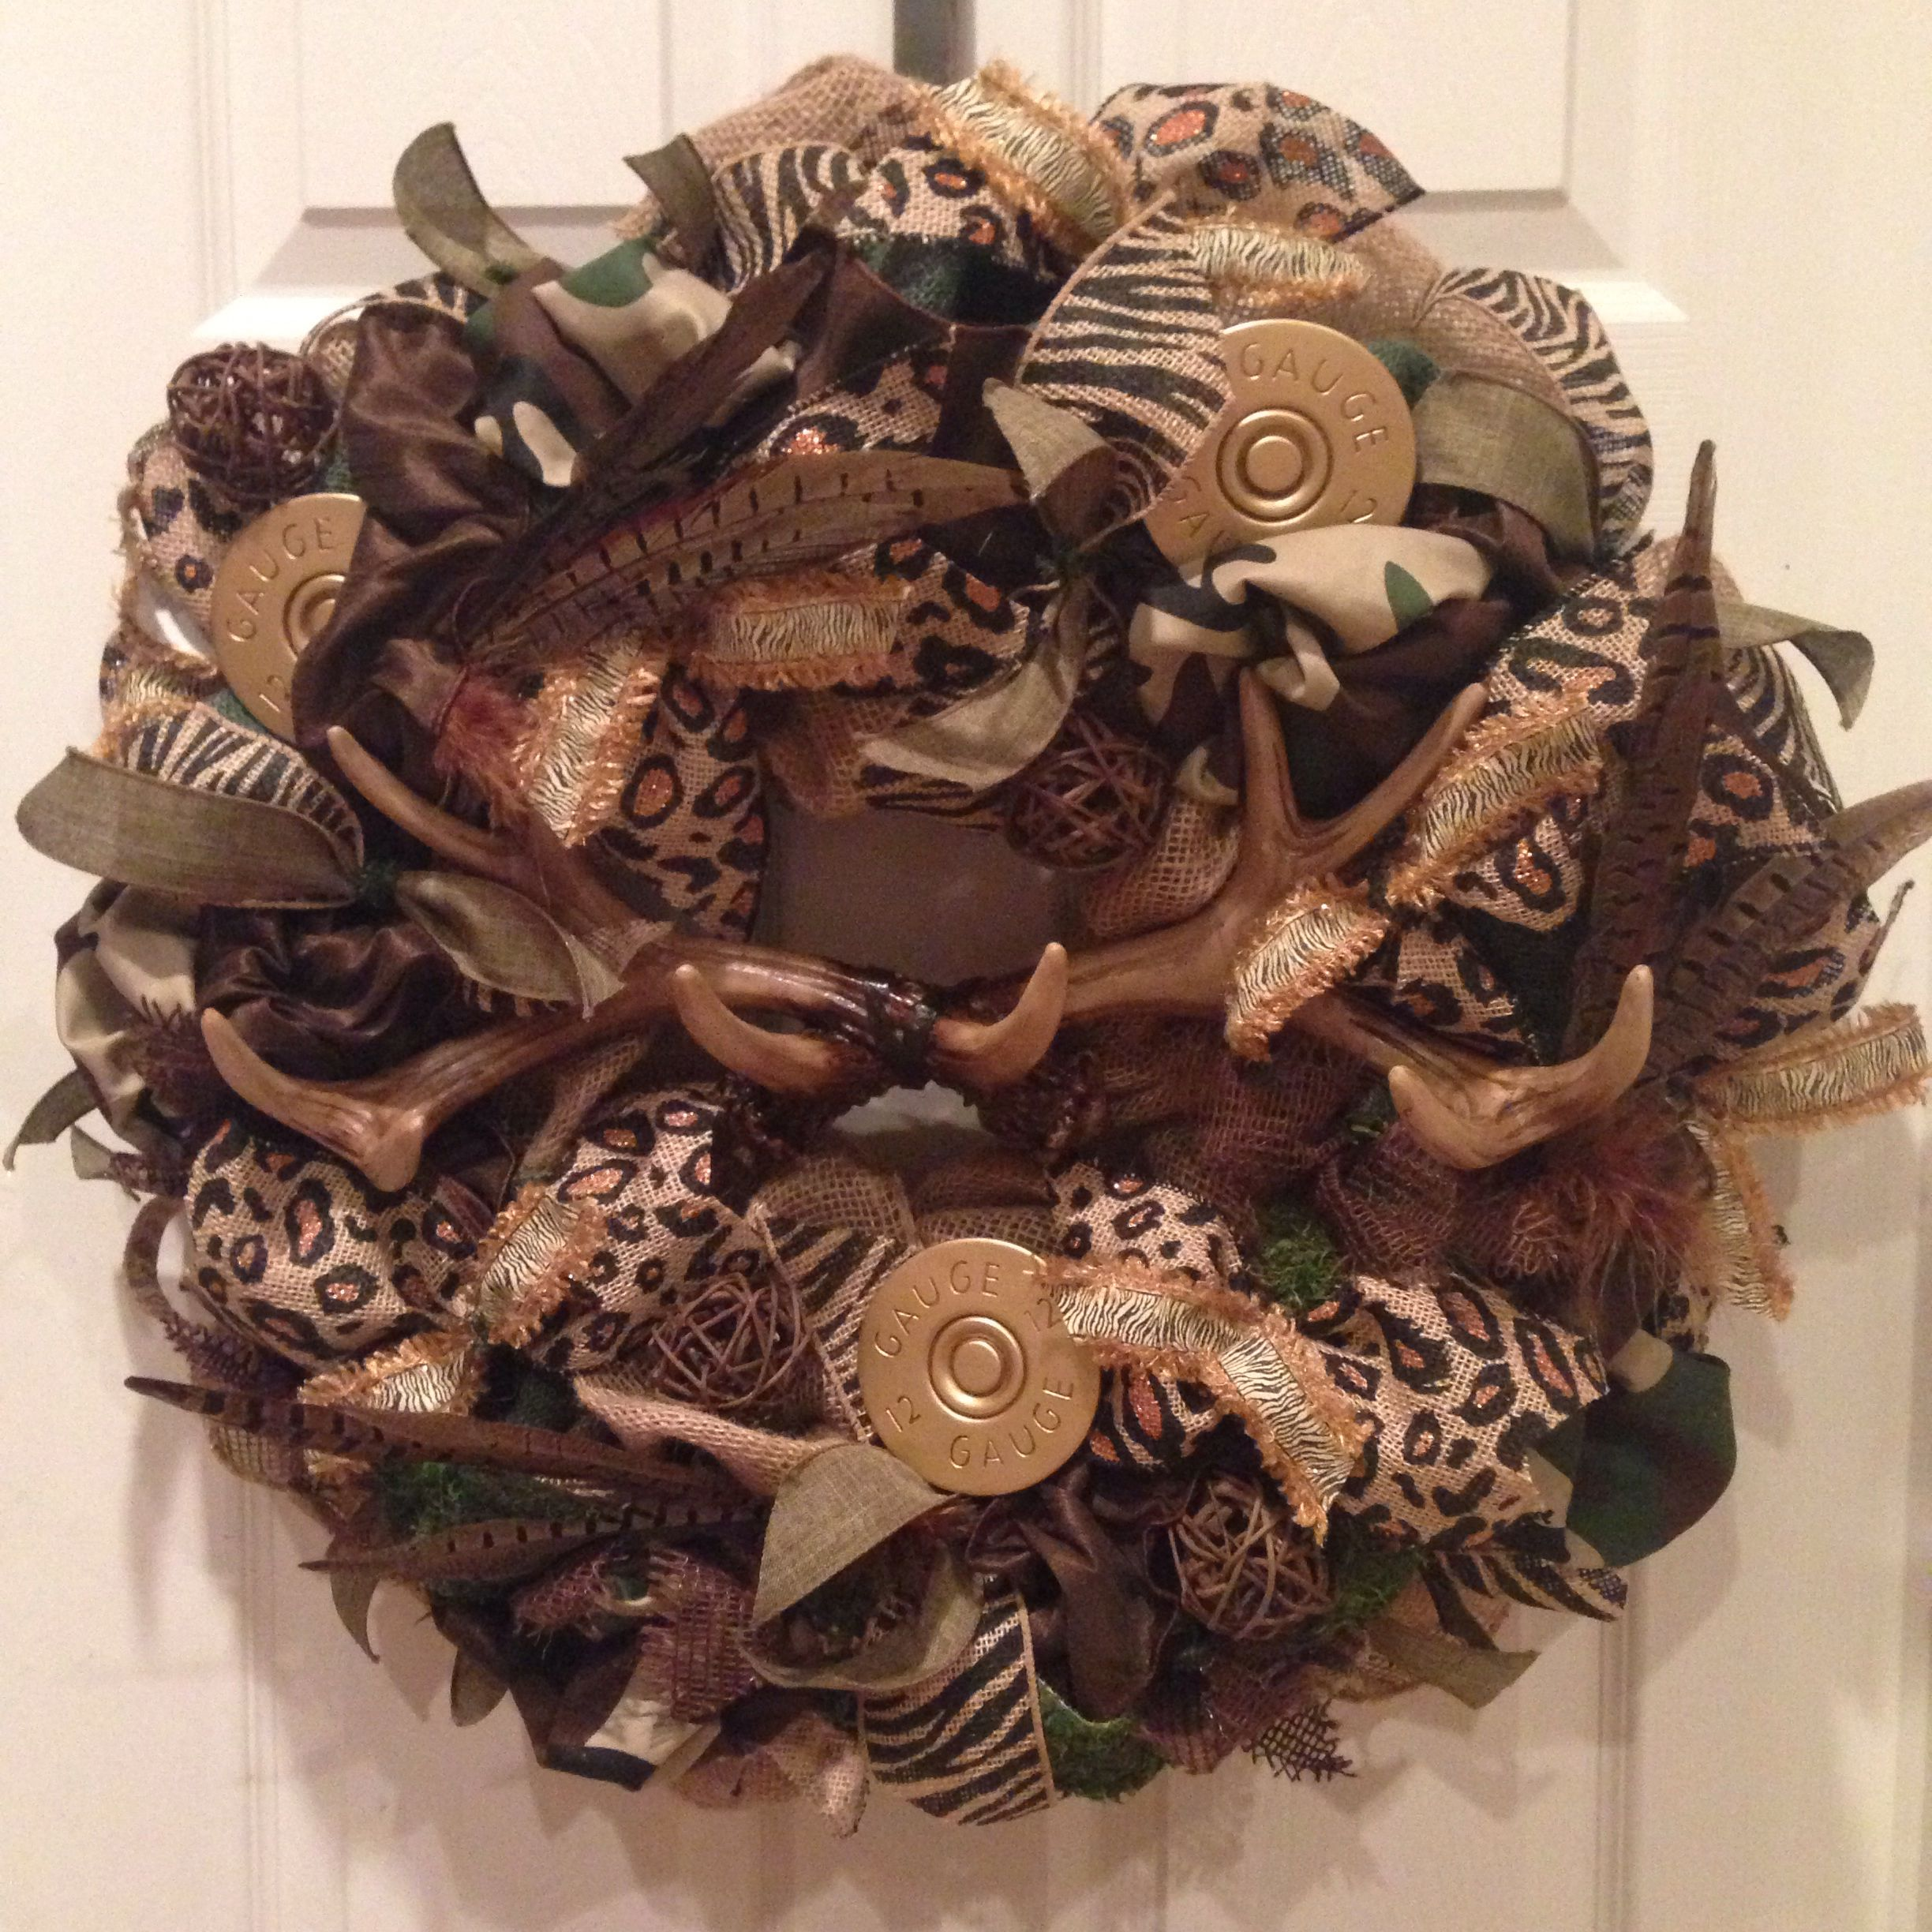 Country, hunting burlap wreath that was a custom order for a friend. Camo, burlap, feathers, antlers, zebra, cheetah, wicker and satin ribbon :)